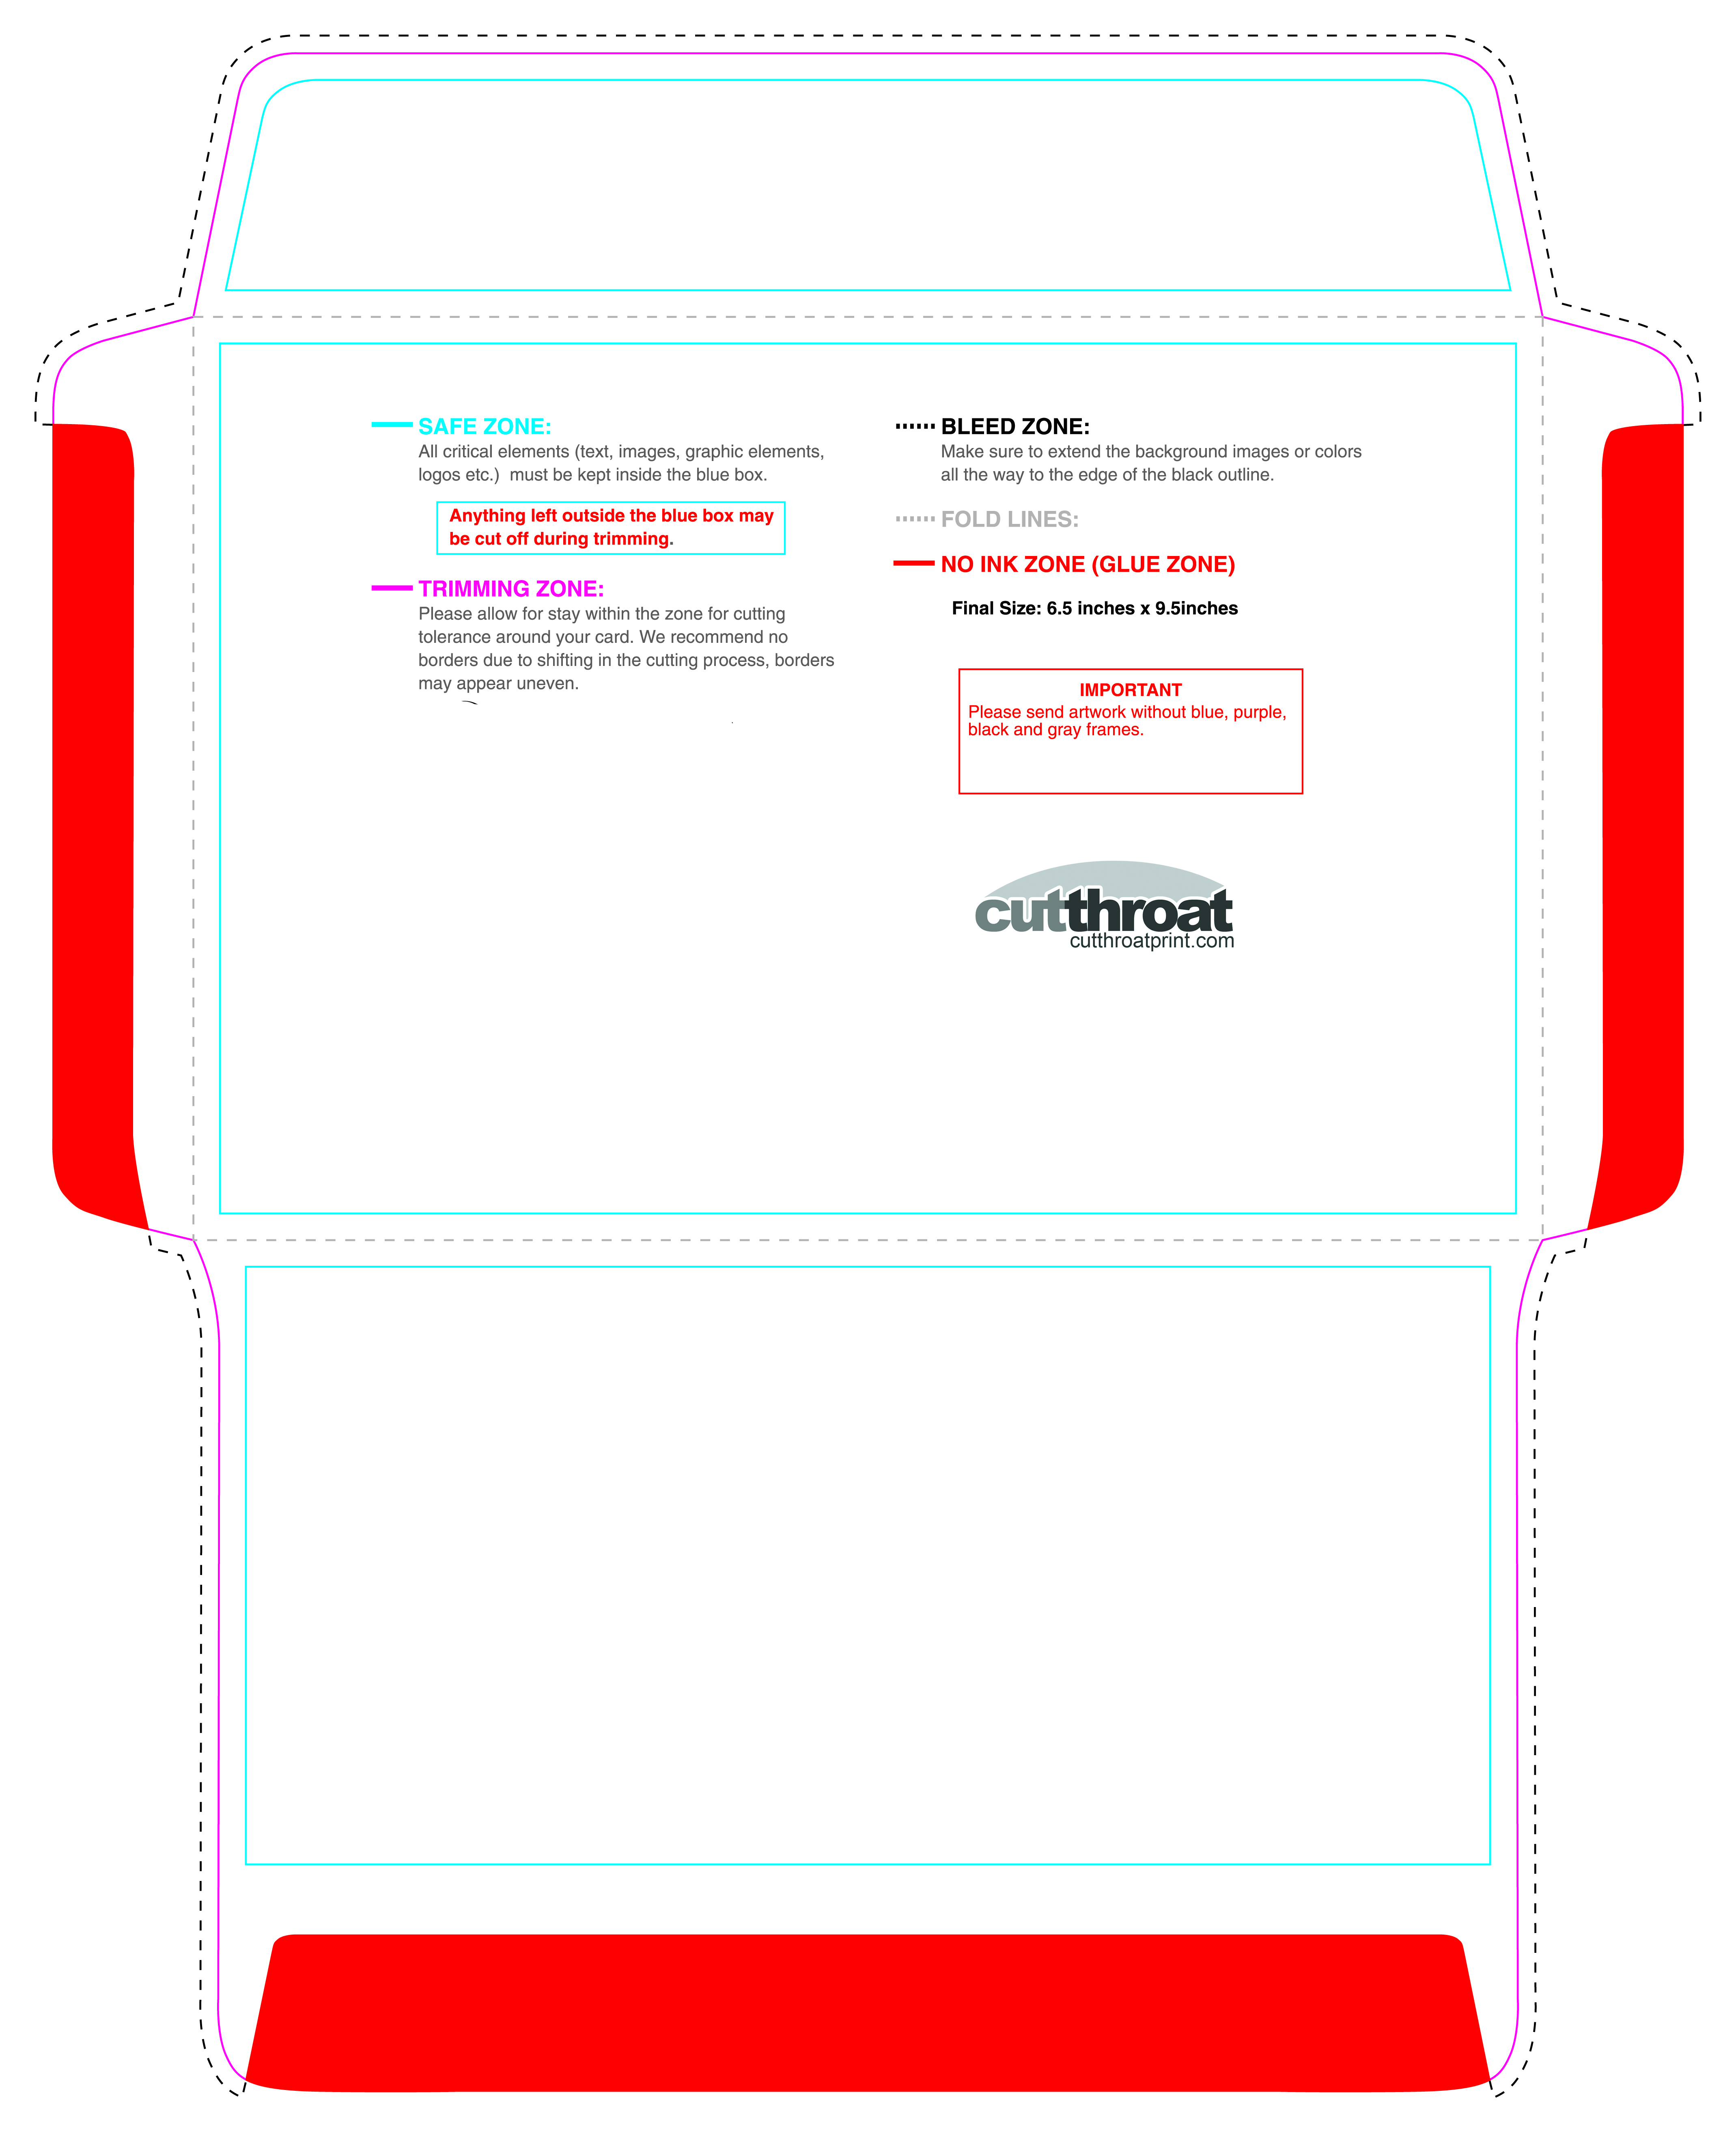 Cutthroat PrintCustom printed Envelopes with FREE SHIPPING!